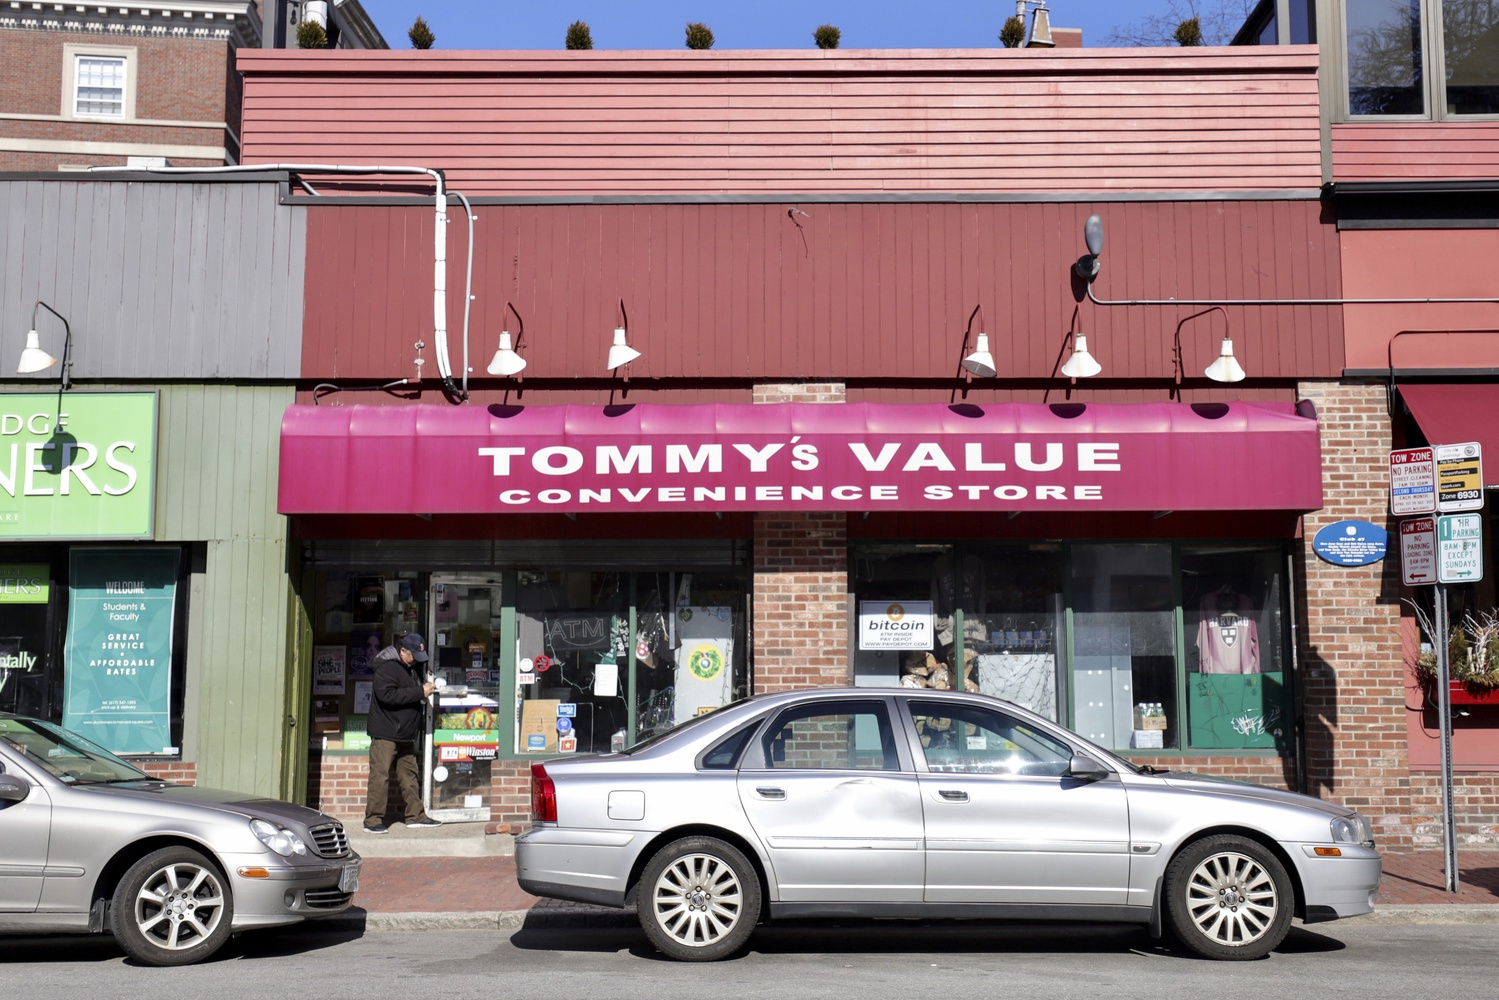 Tommy's Value is a convenience store located at 47 Mt. Auburn Street.